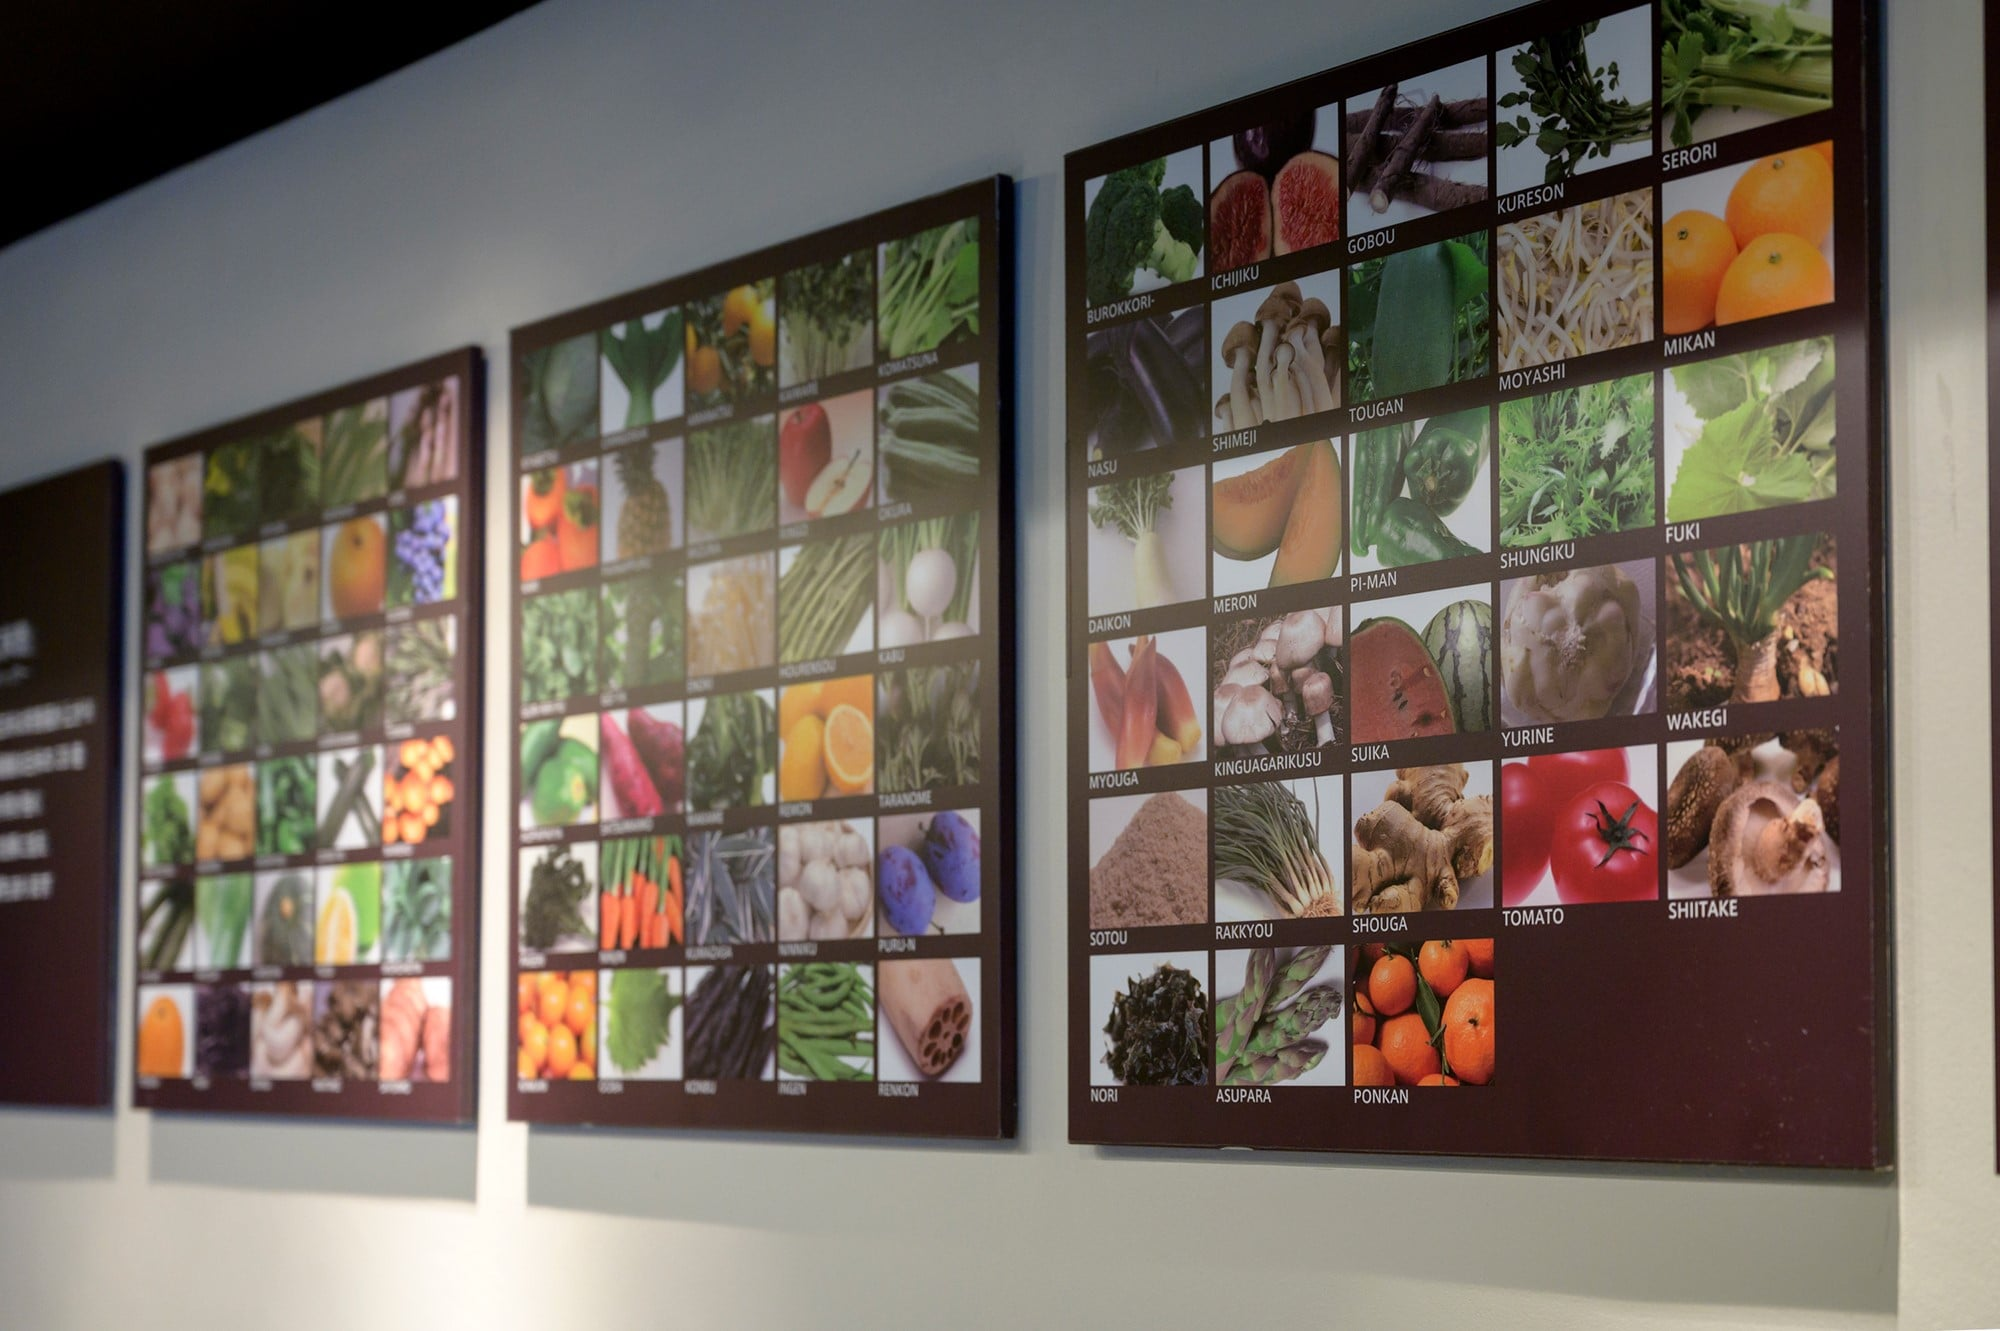 Images of more than 70 varieties of vegetables and fruits are displayed on the wall.